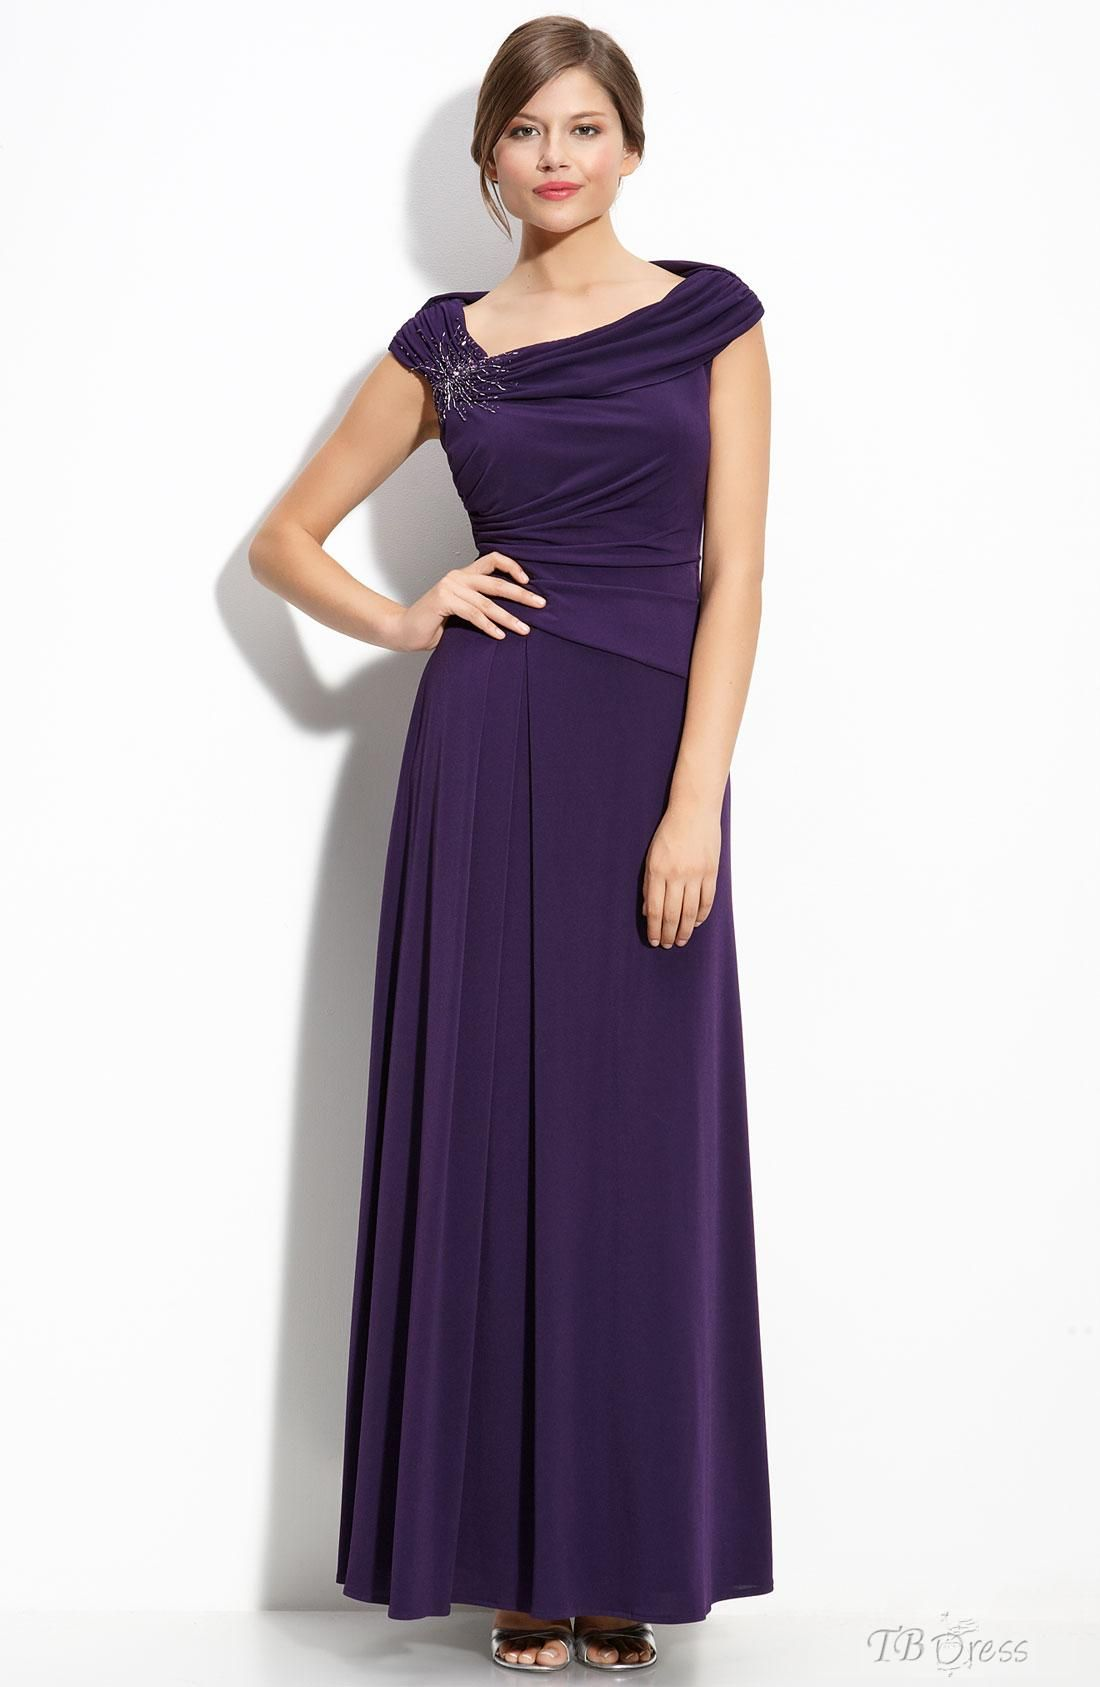 Mothers dresses for a wedding  Mother of the Groom Dress  Wedding Clothes Dresses  Pinterest